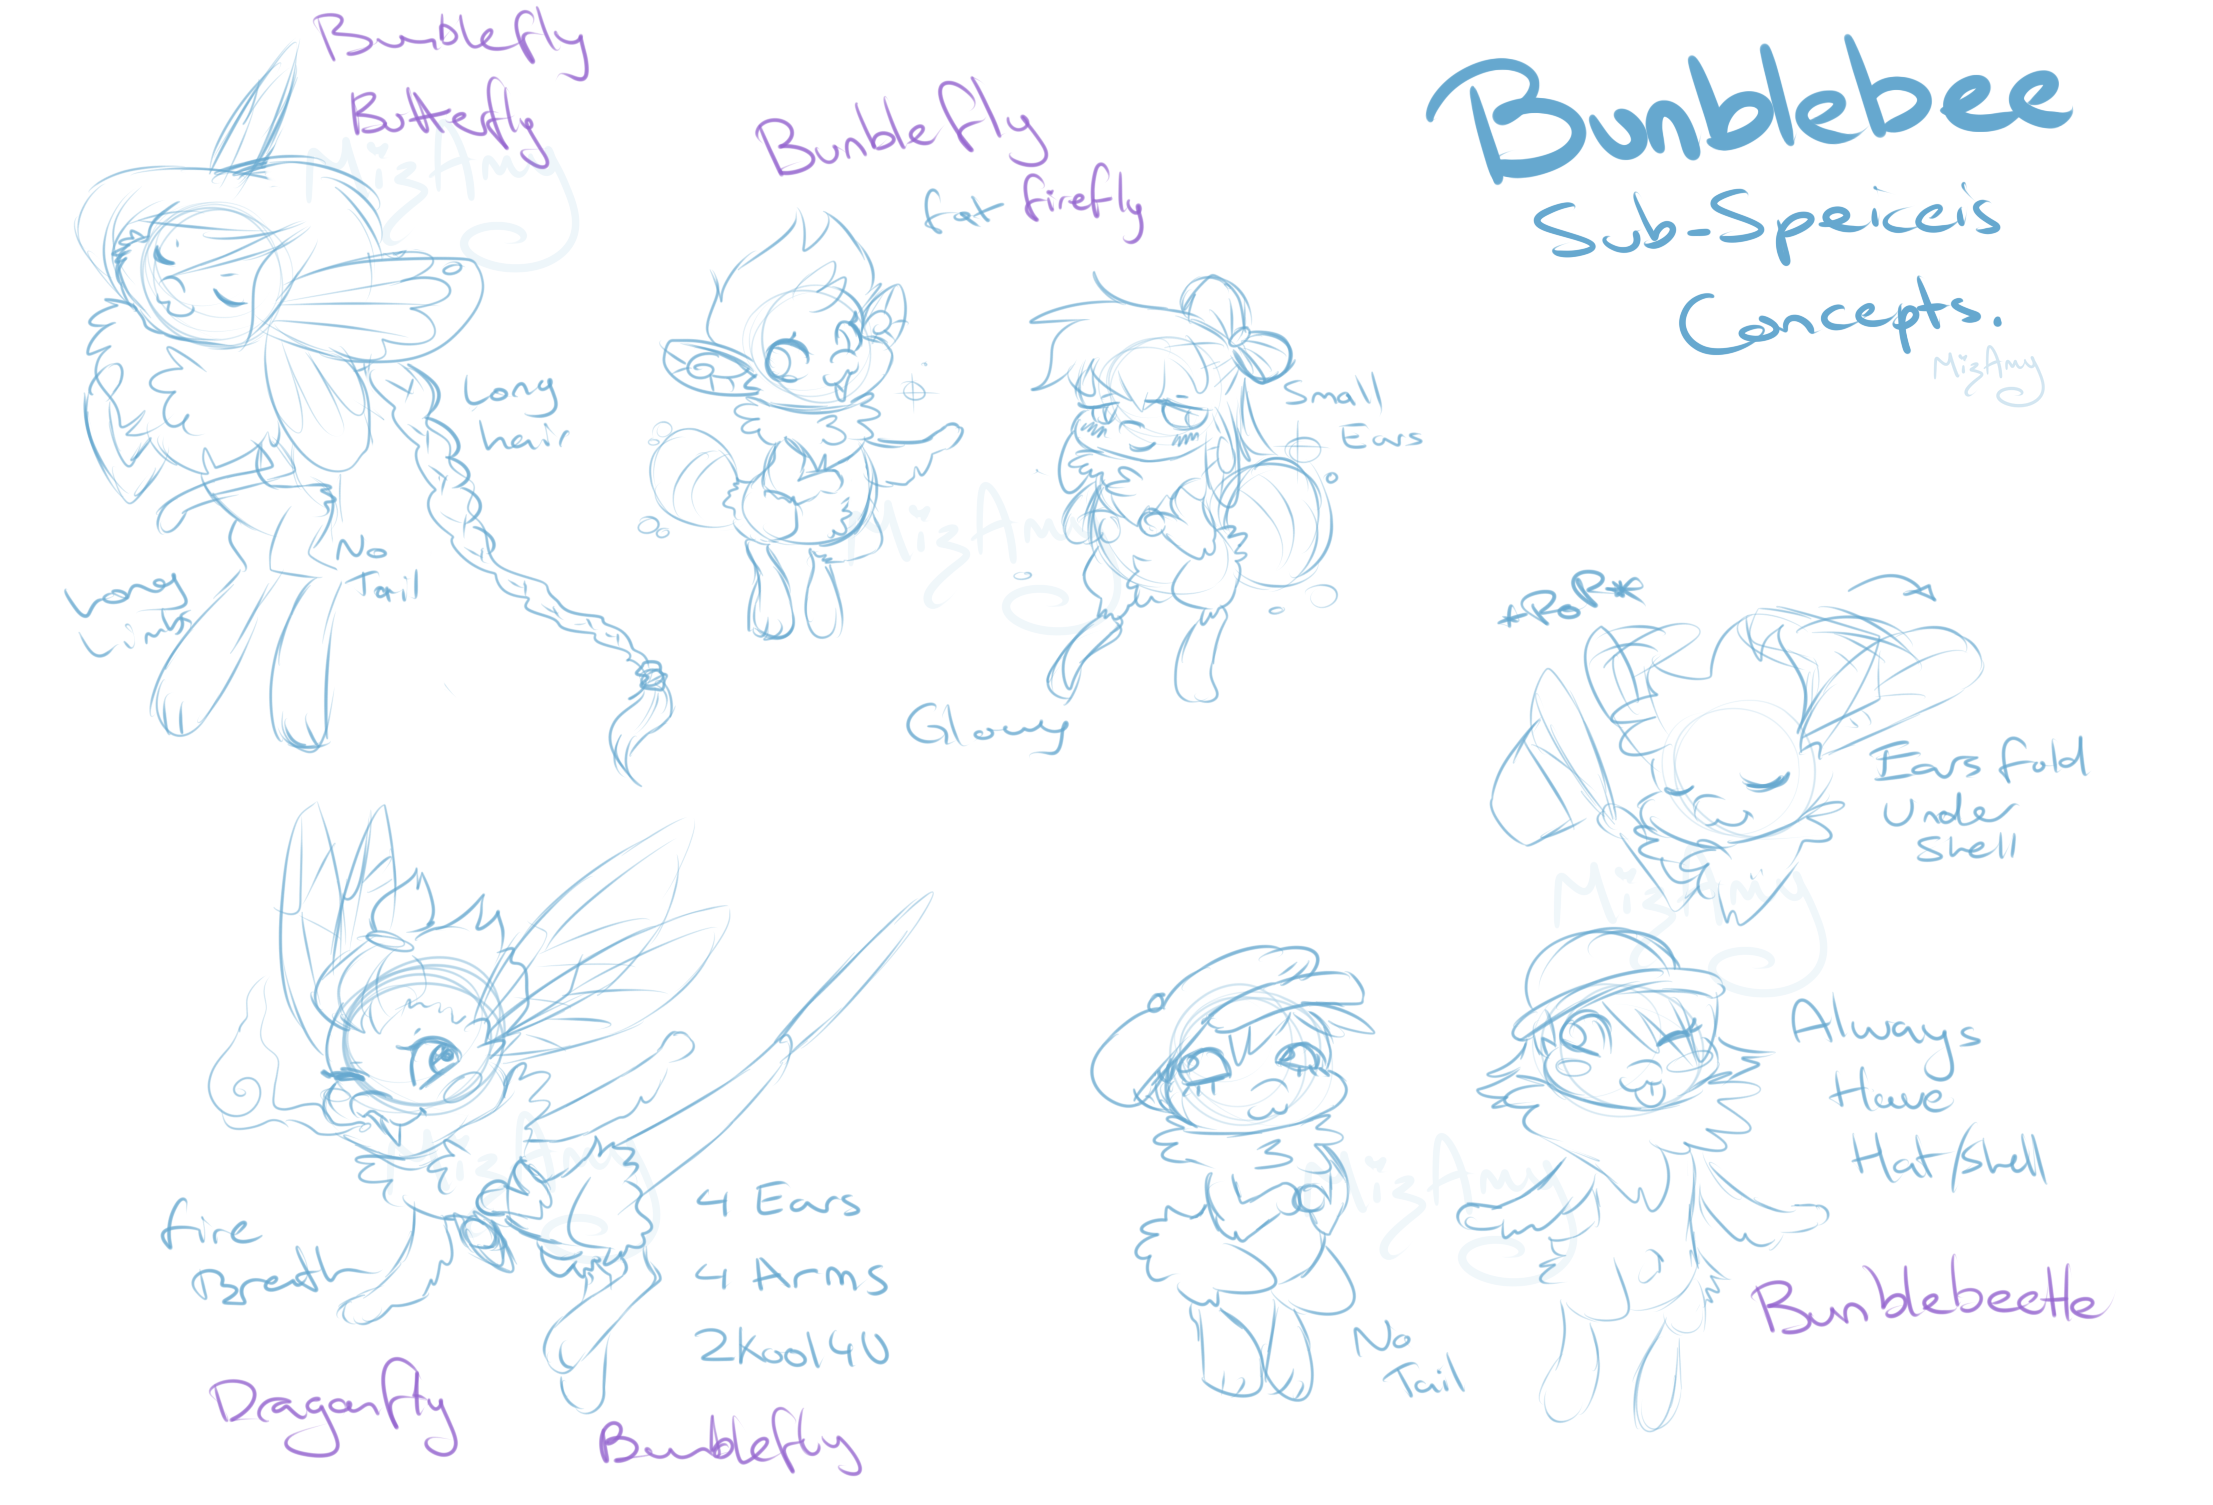 Bunblebee subspecies concept sketches by Kandy-Cube